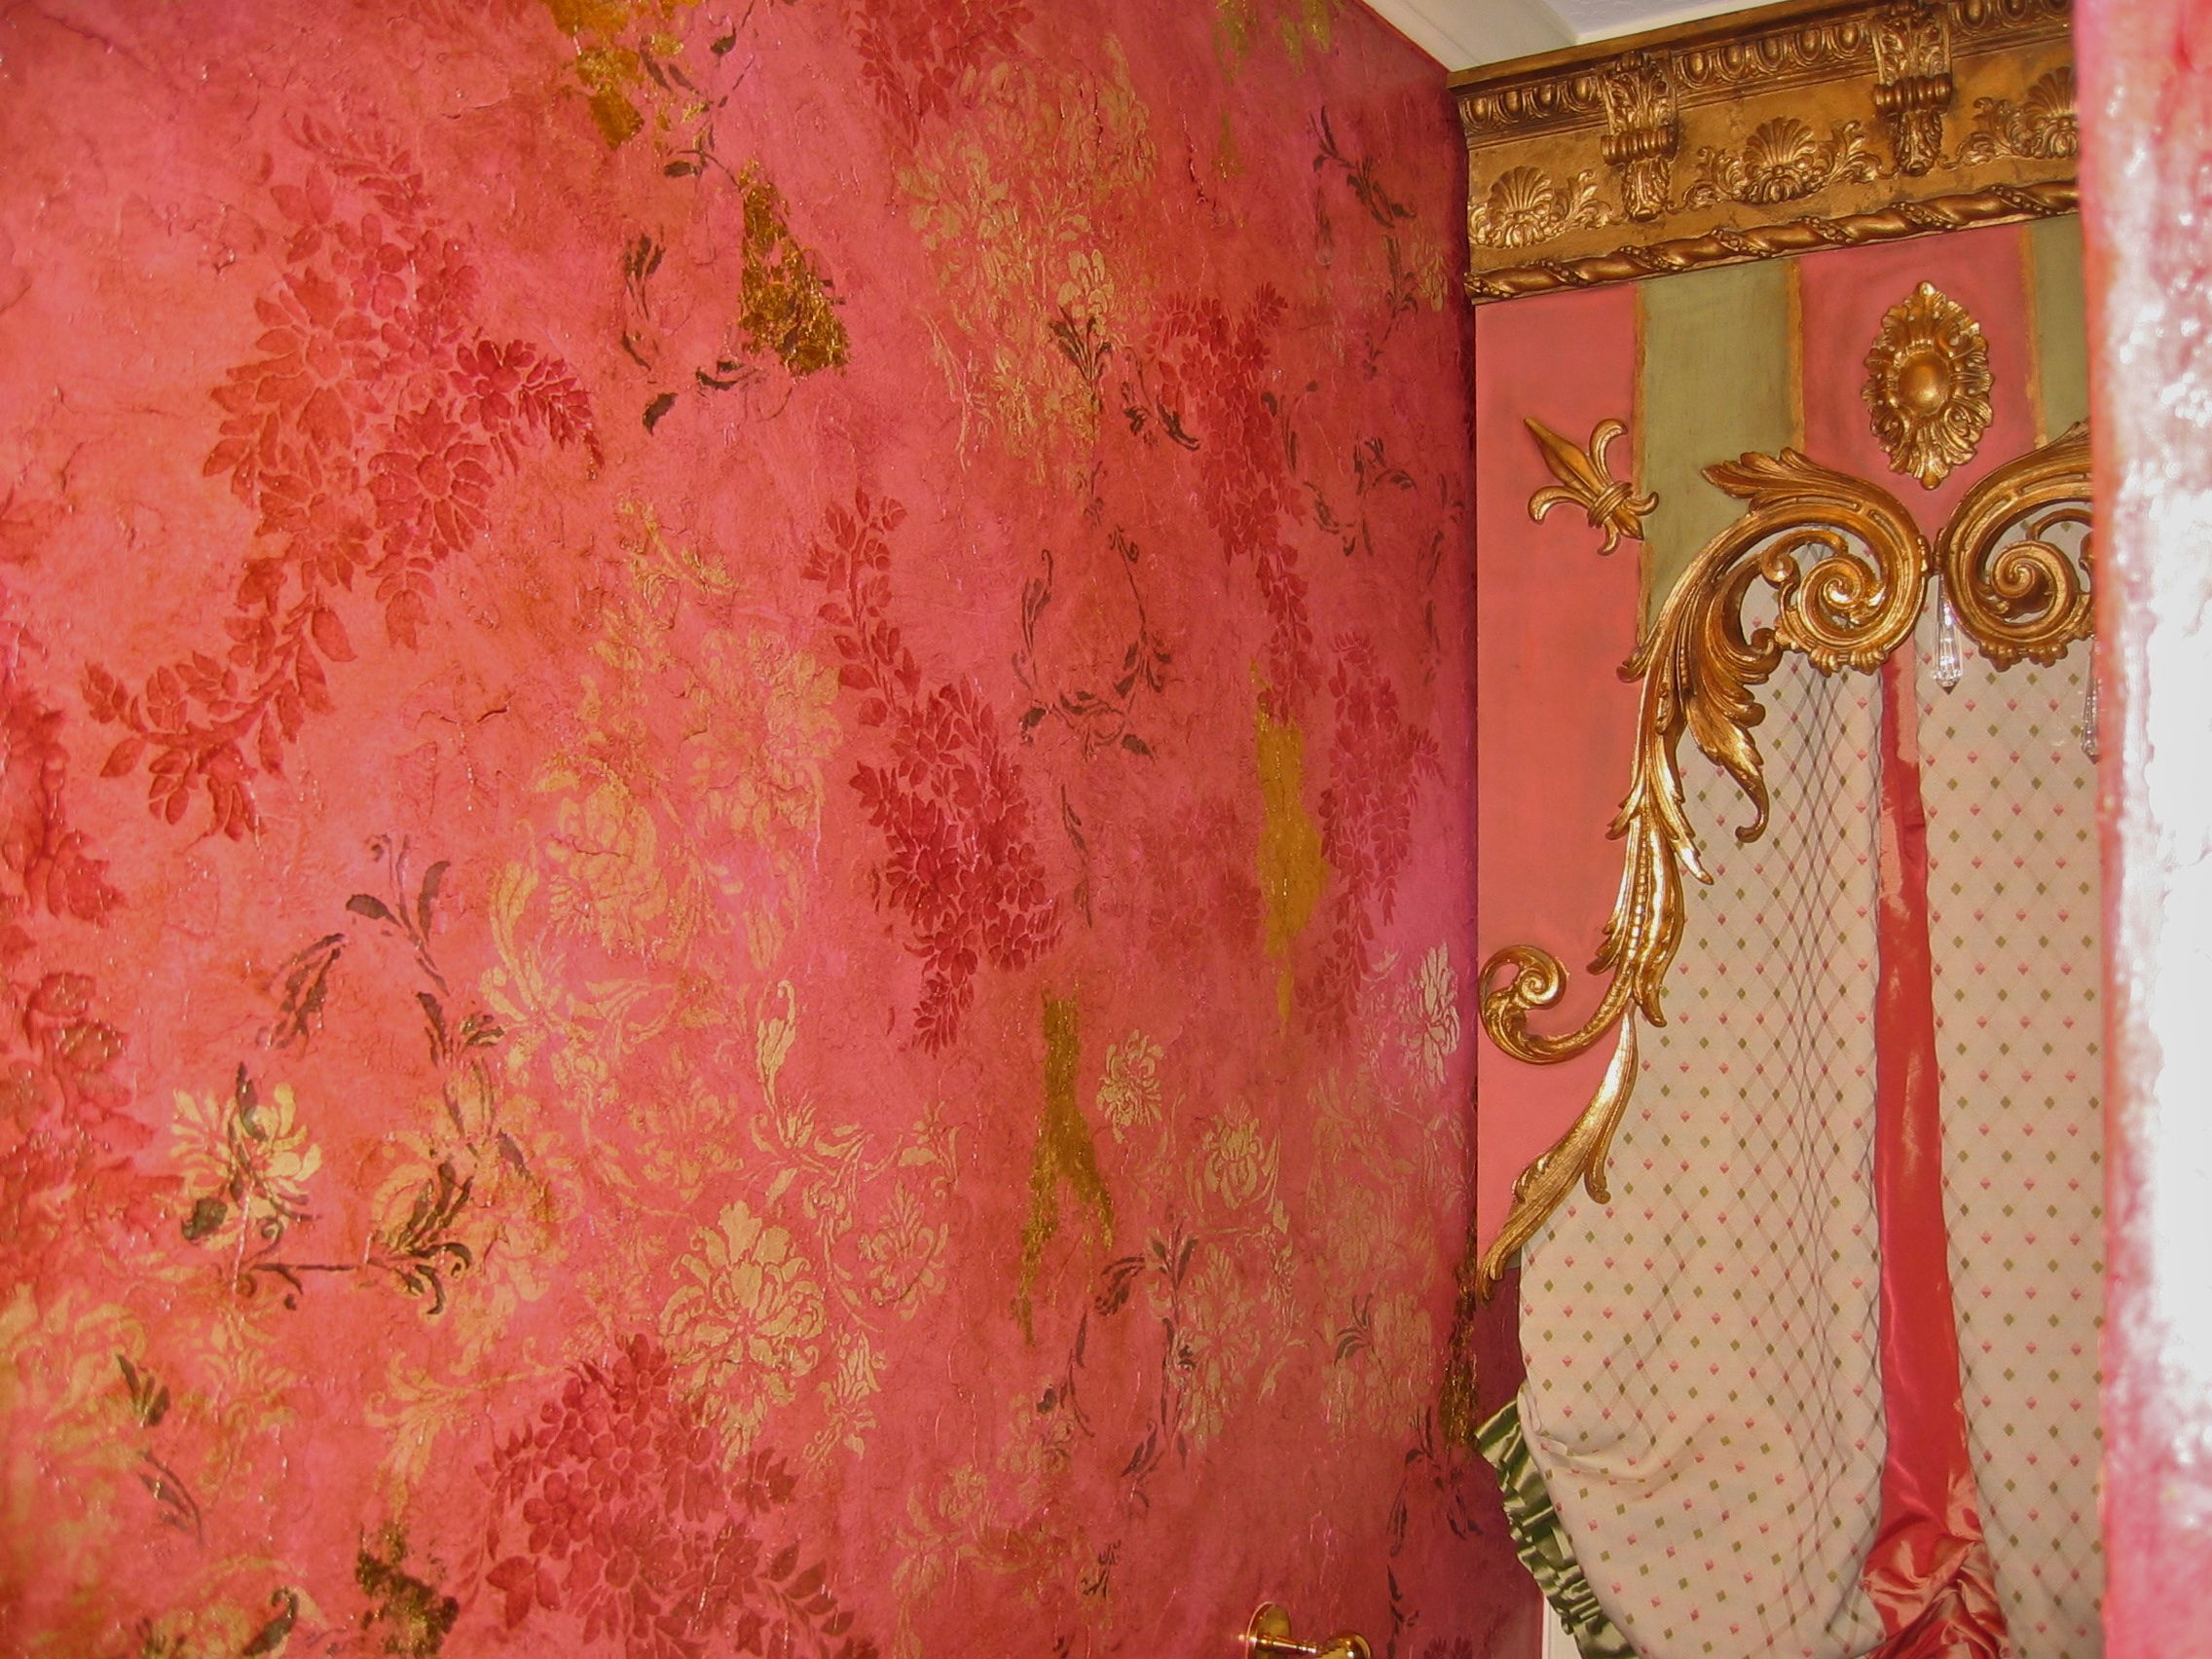 Pink Plaster With Stencils And Gold Leaf Work By Tiffany